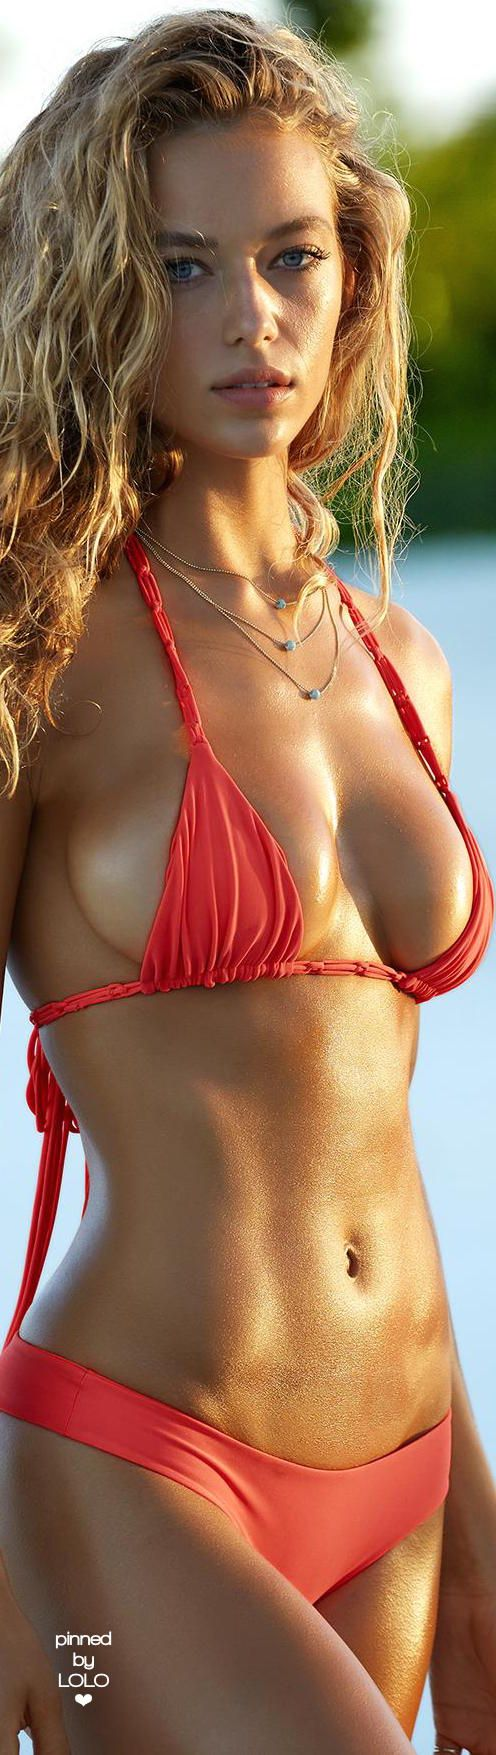 Hannah Ferguson Sports Illustrated Swimsuit Edition 2016 | LOLO❤︎